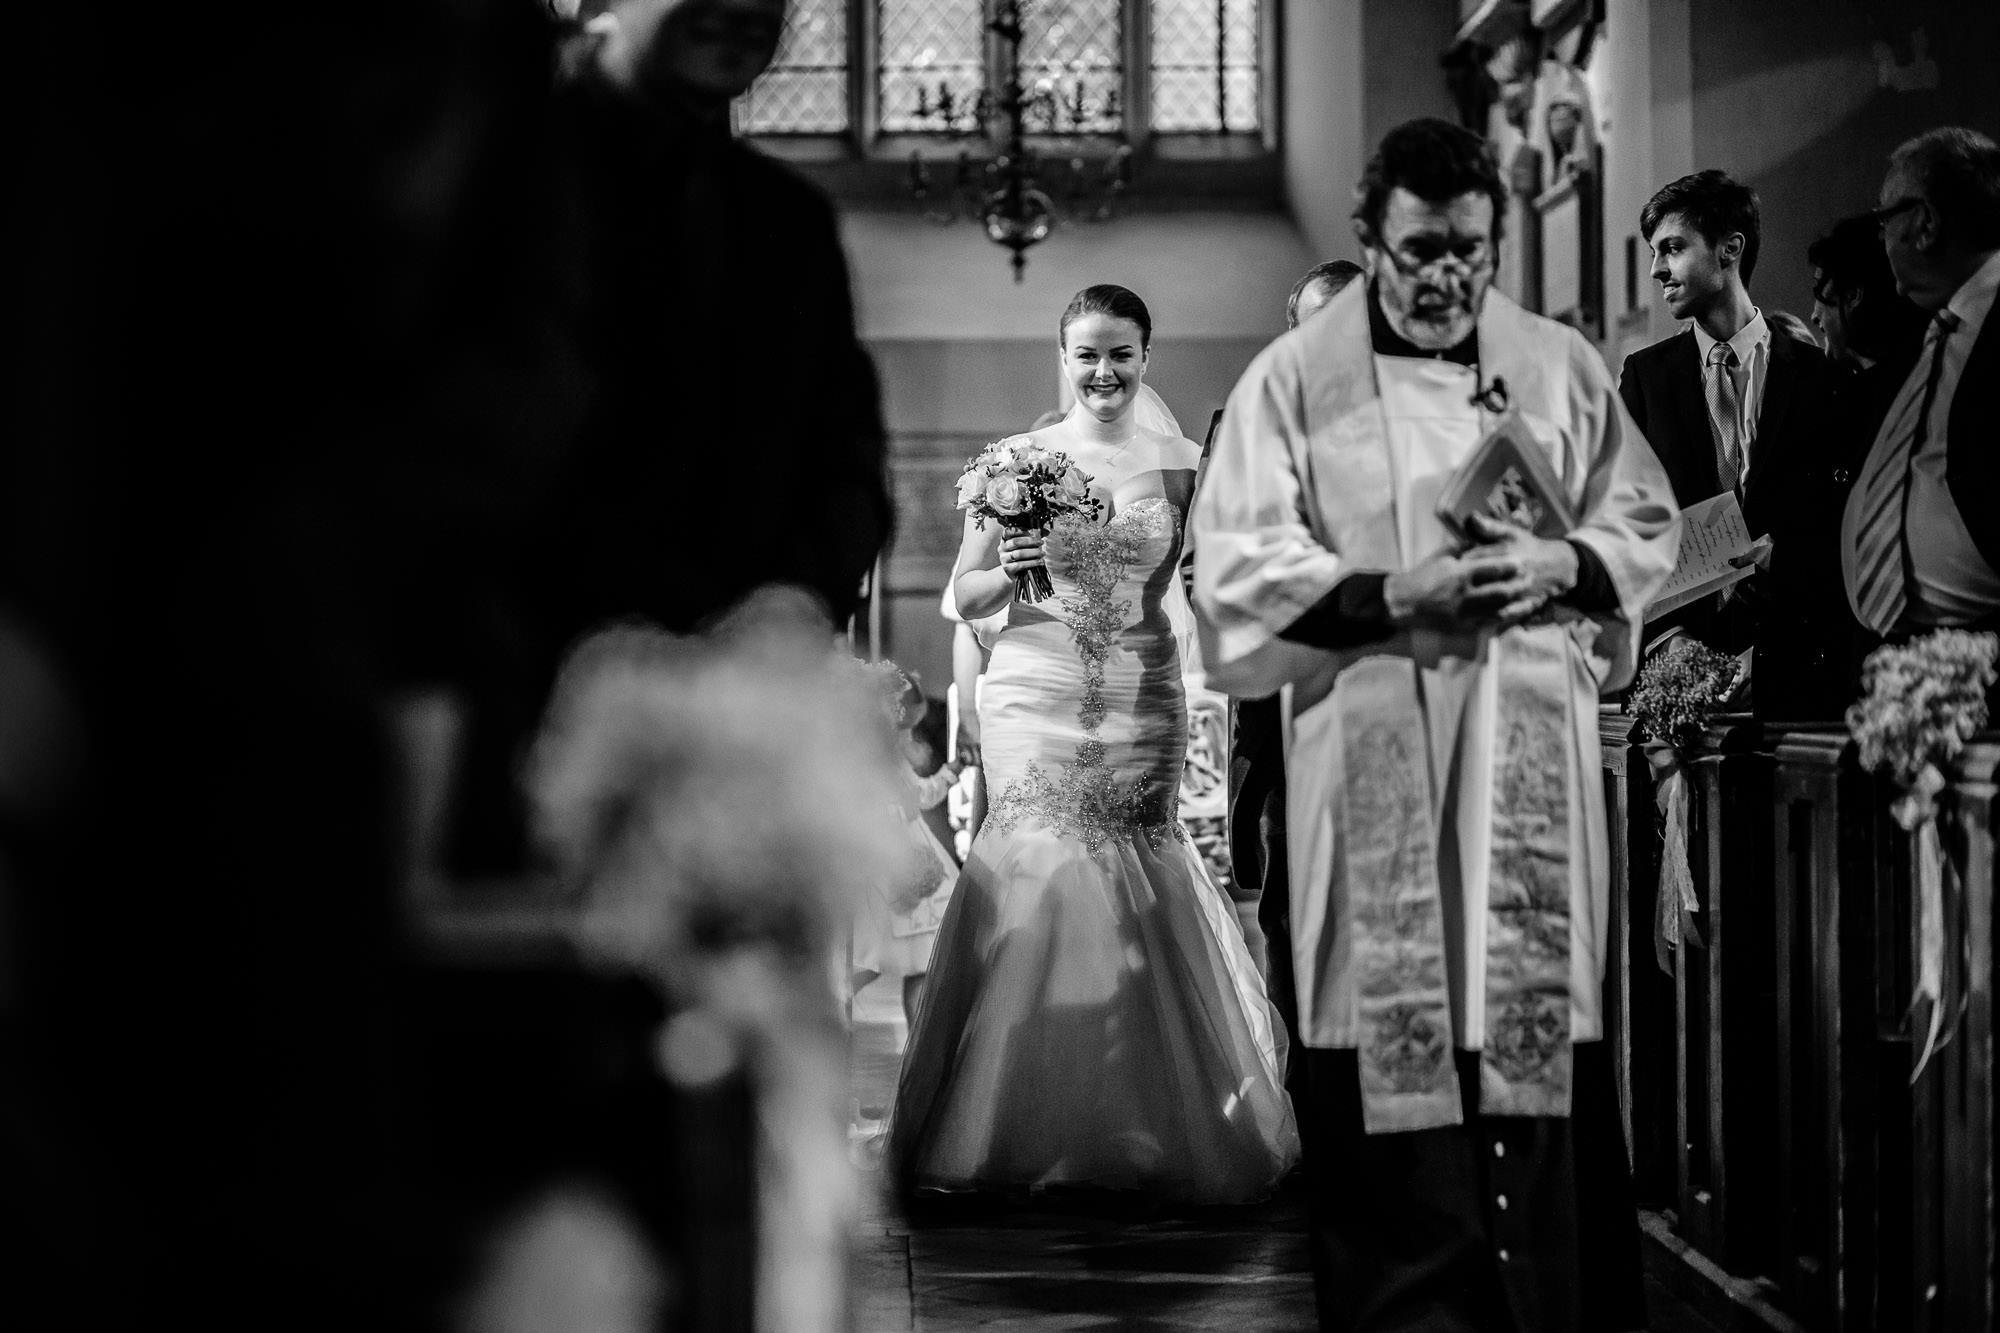 Bride walking down aisle at wedding St James Parish Church, Weybridge